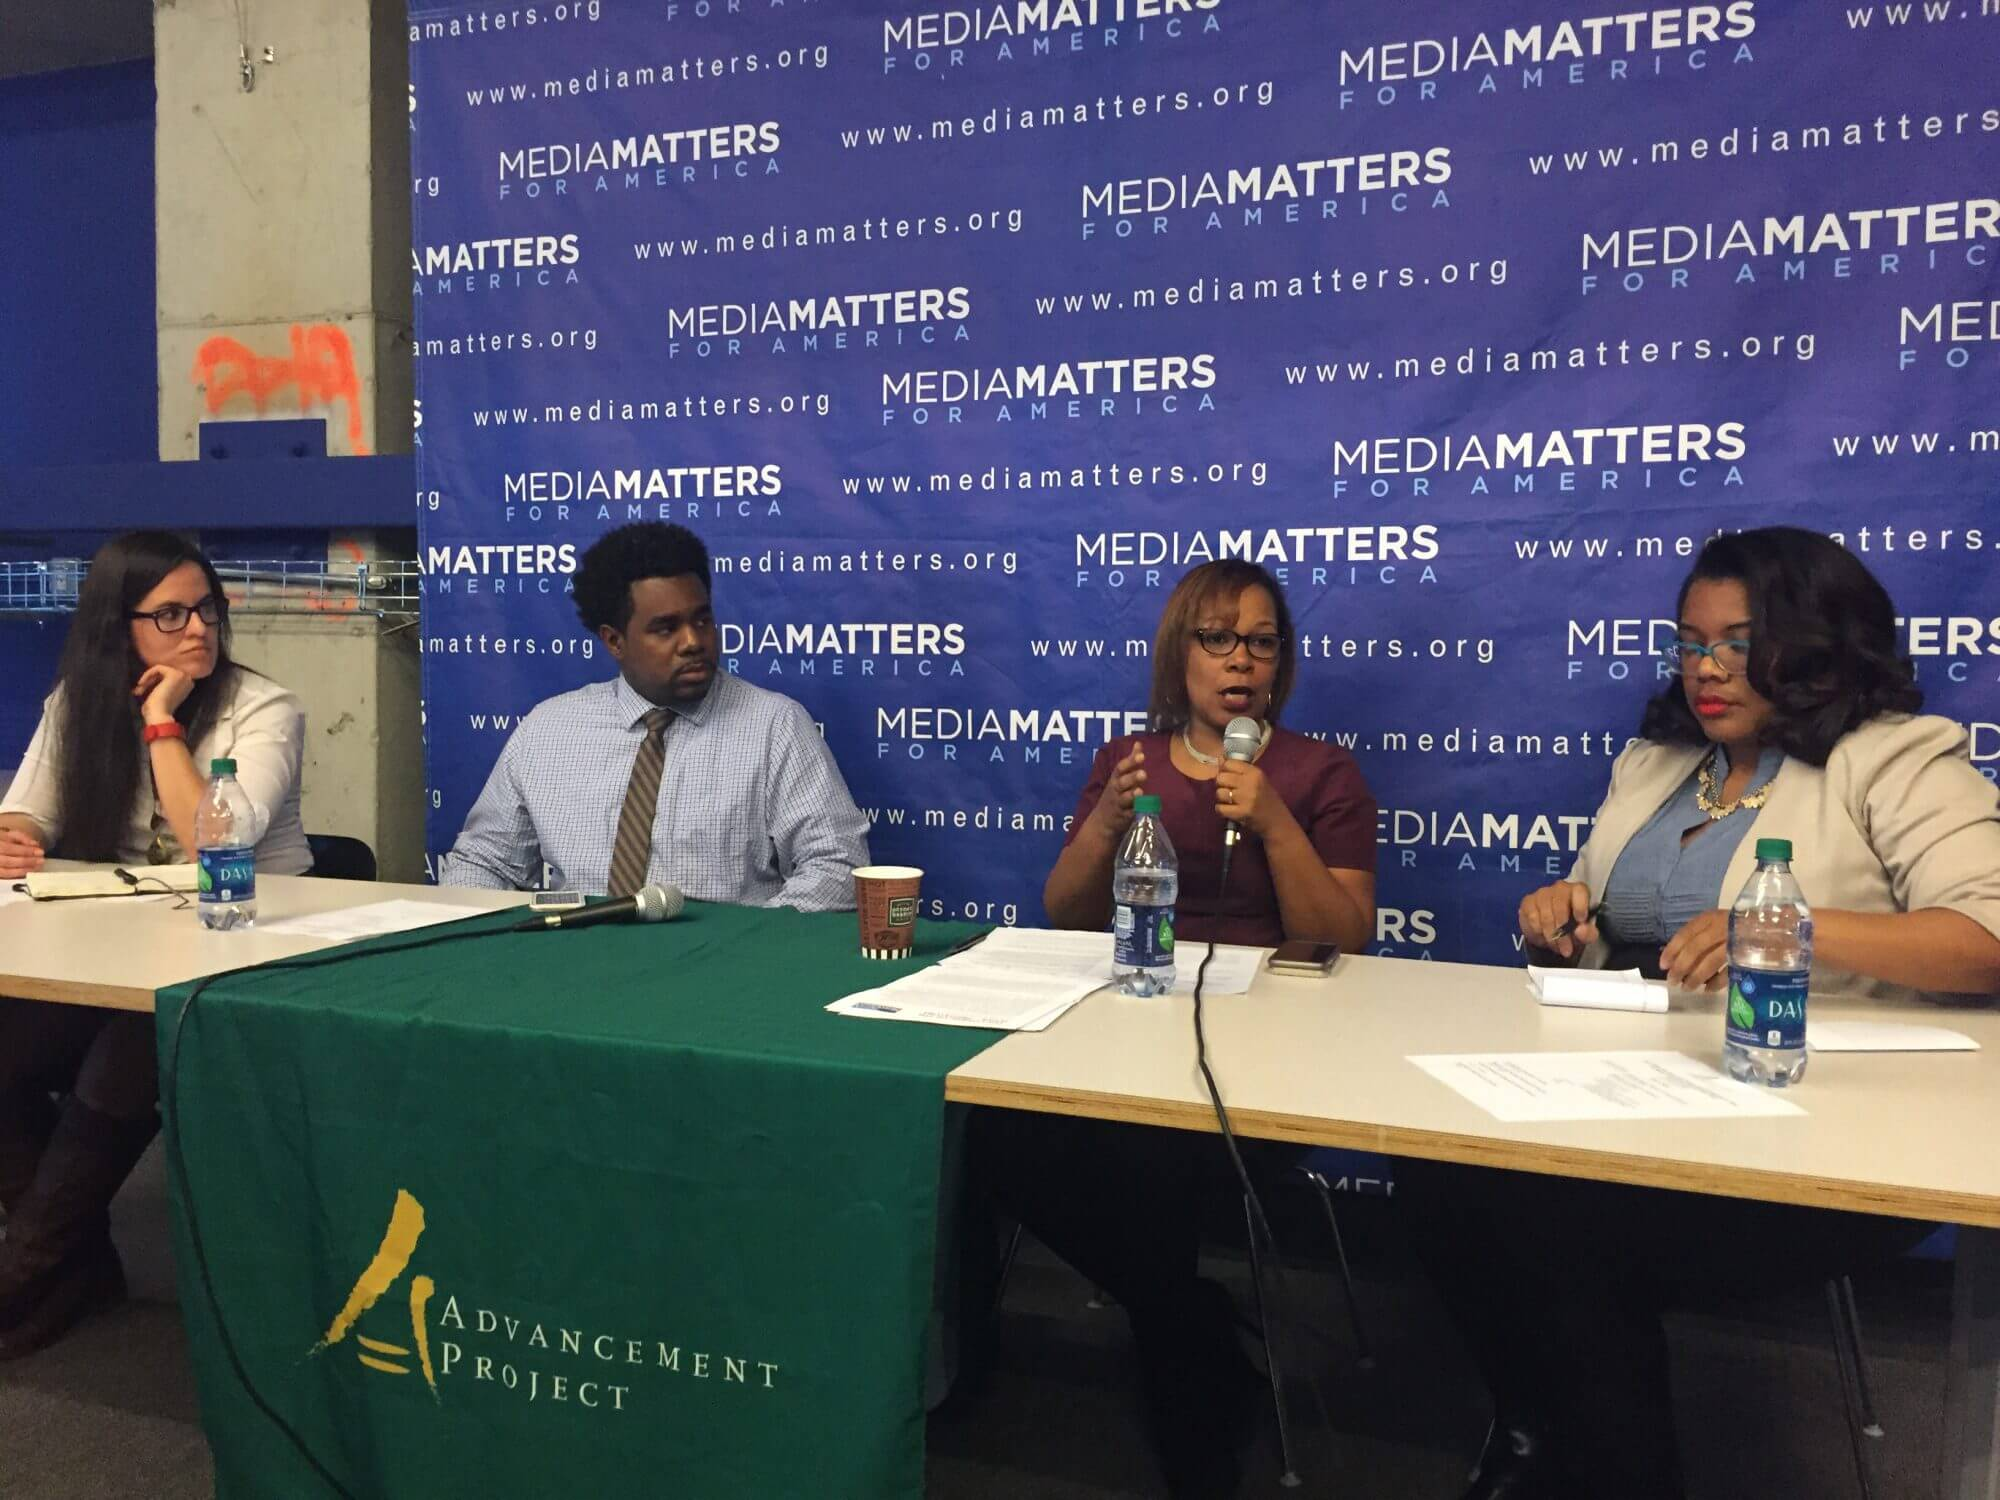 Media must change portrayal of black and Latino youths, panel says